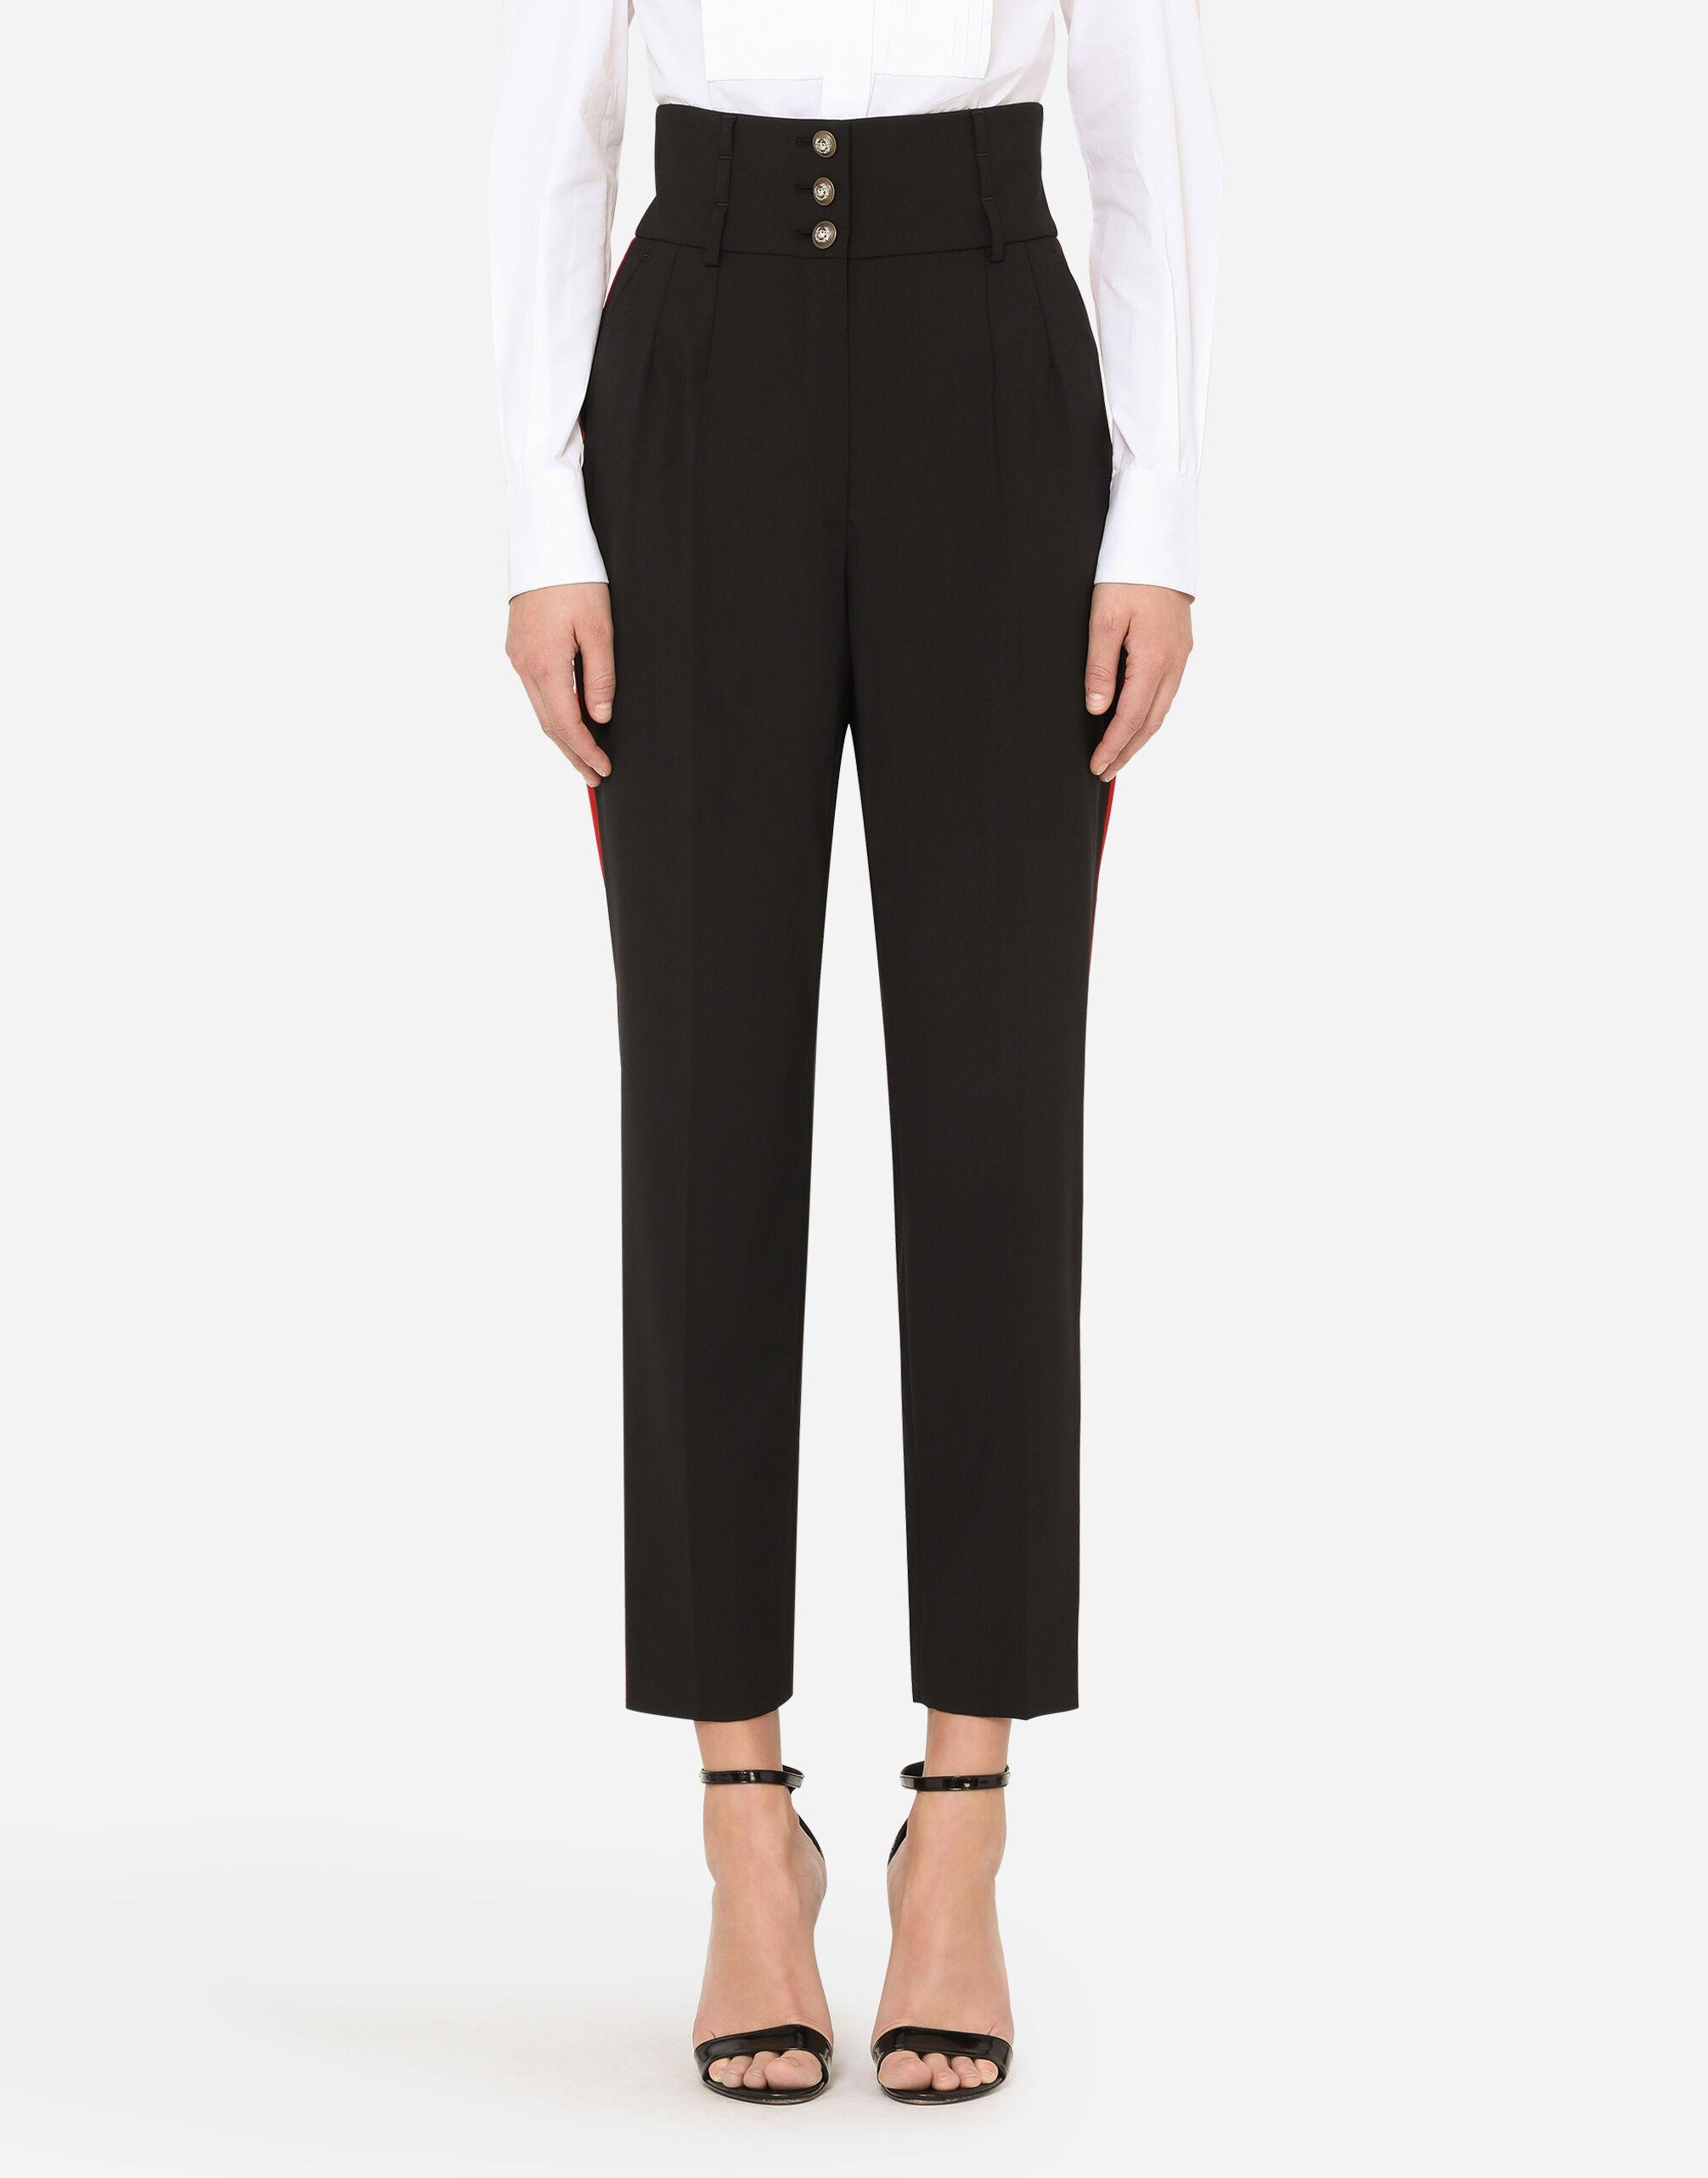 High-waisted pants with contrasting side bands